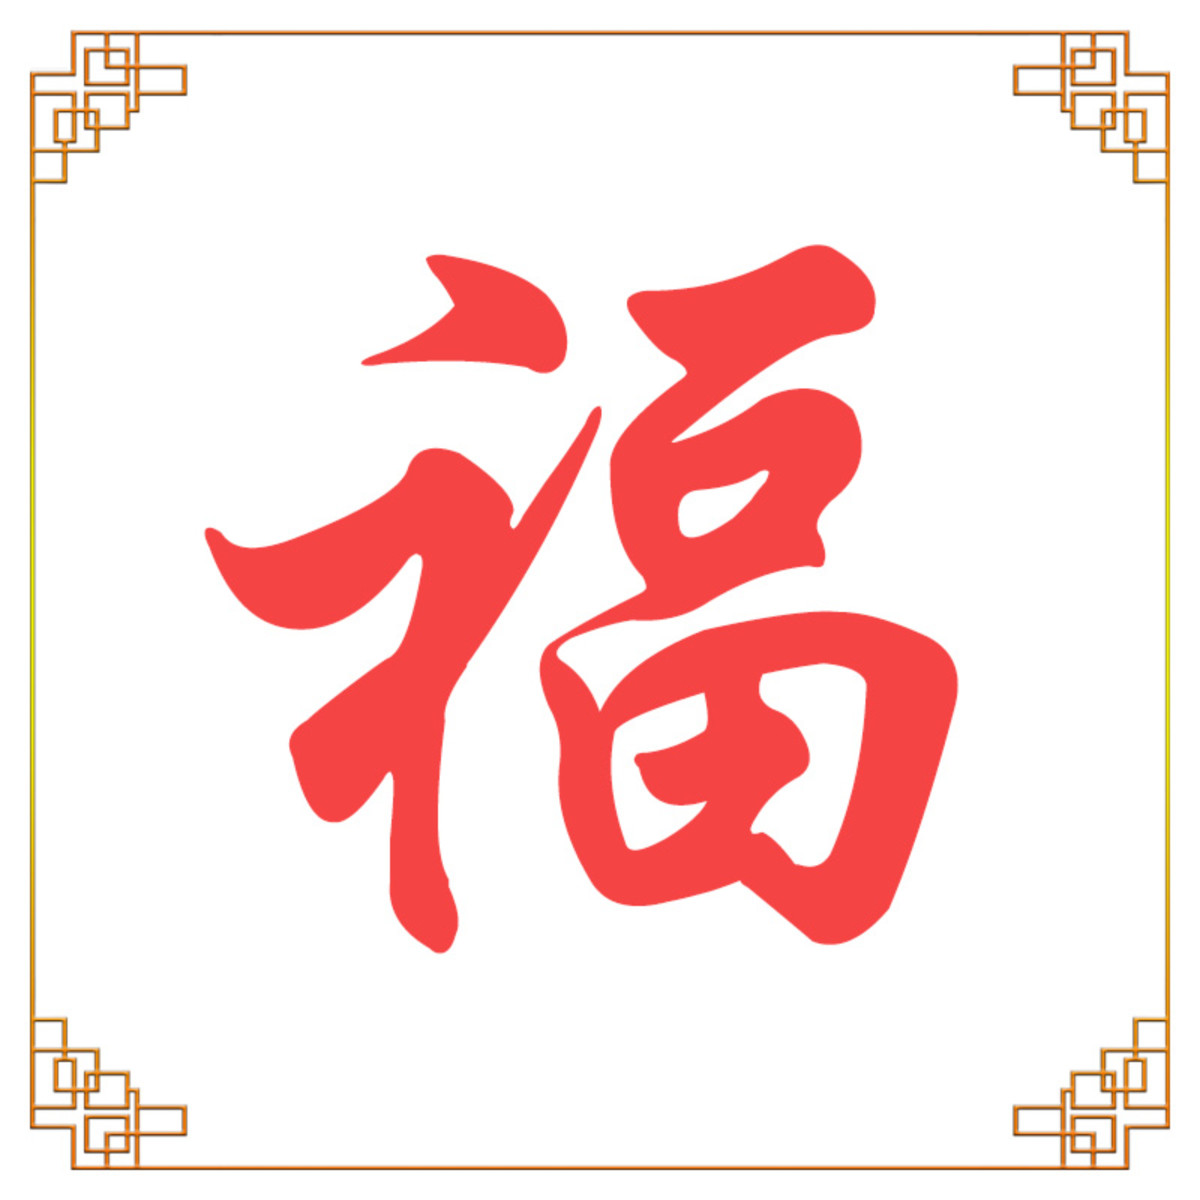 Fu is the Chinese symbol and character for blessings. You will likely see this everywhere during your China vacation.